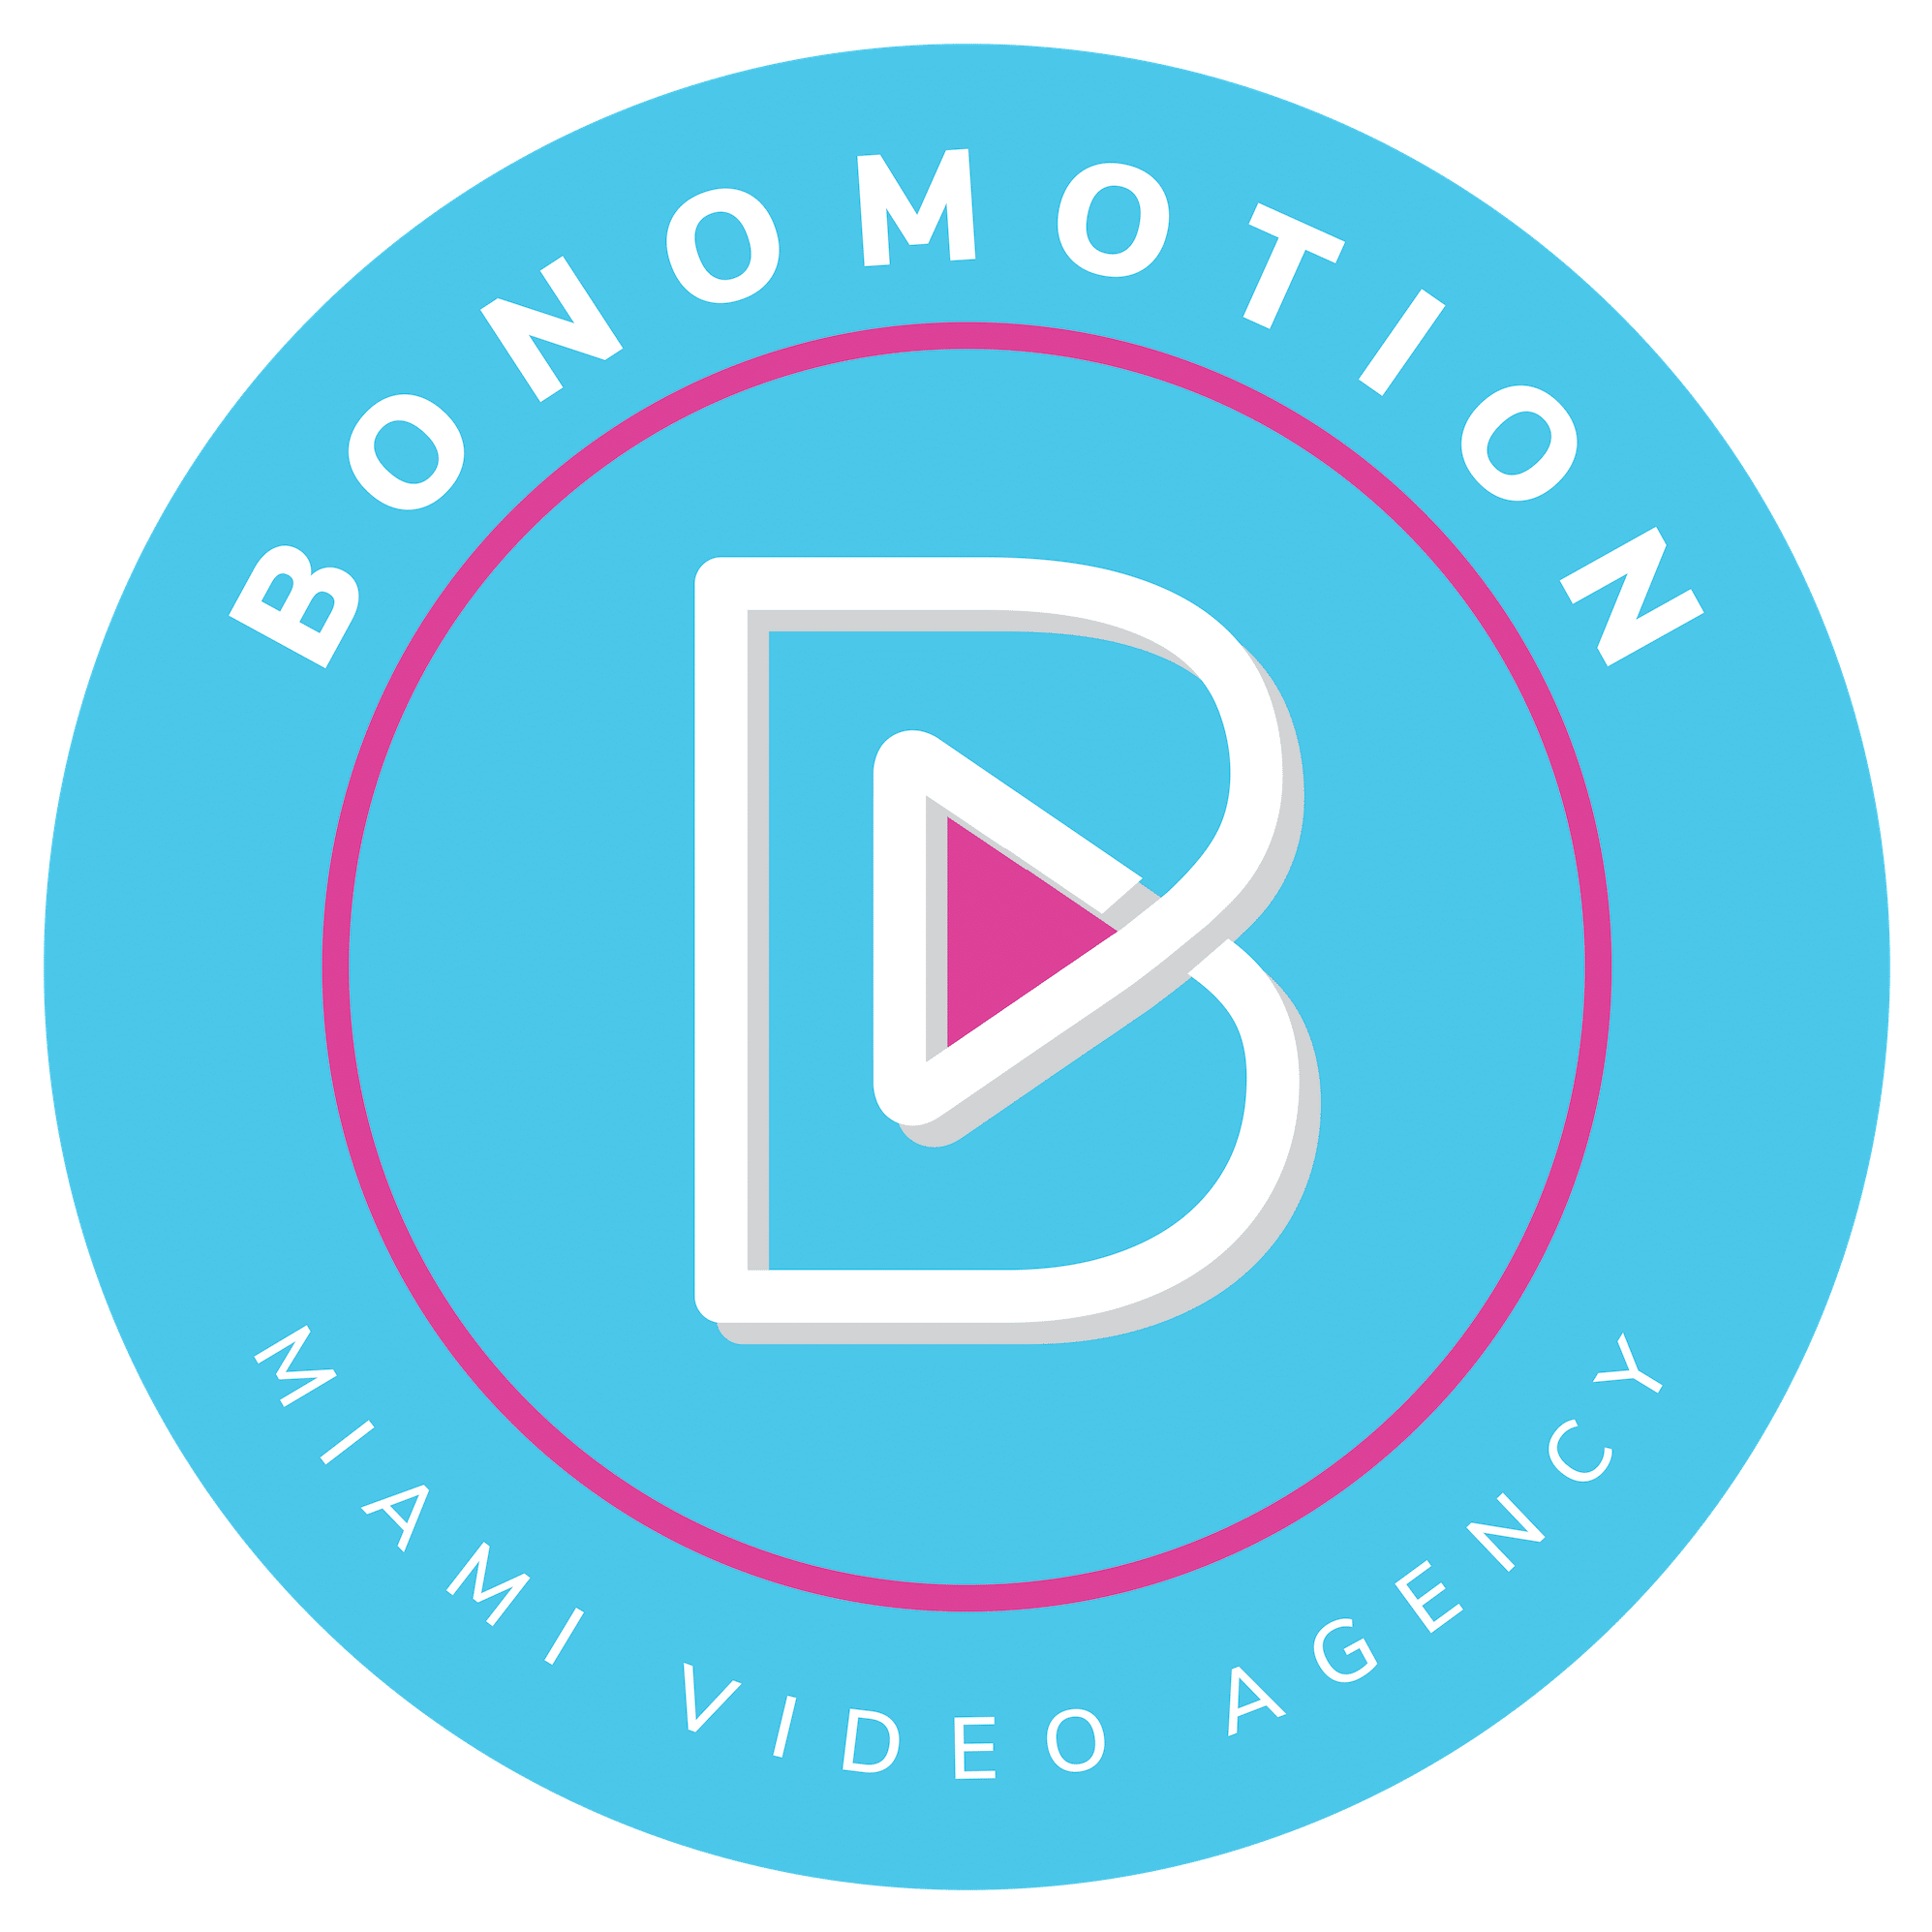 Bonomotion Marketplace Privacy Policy